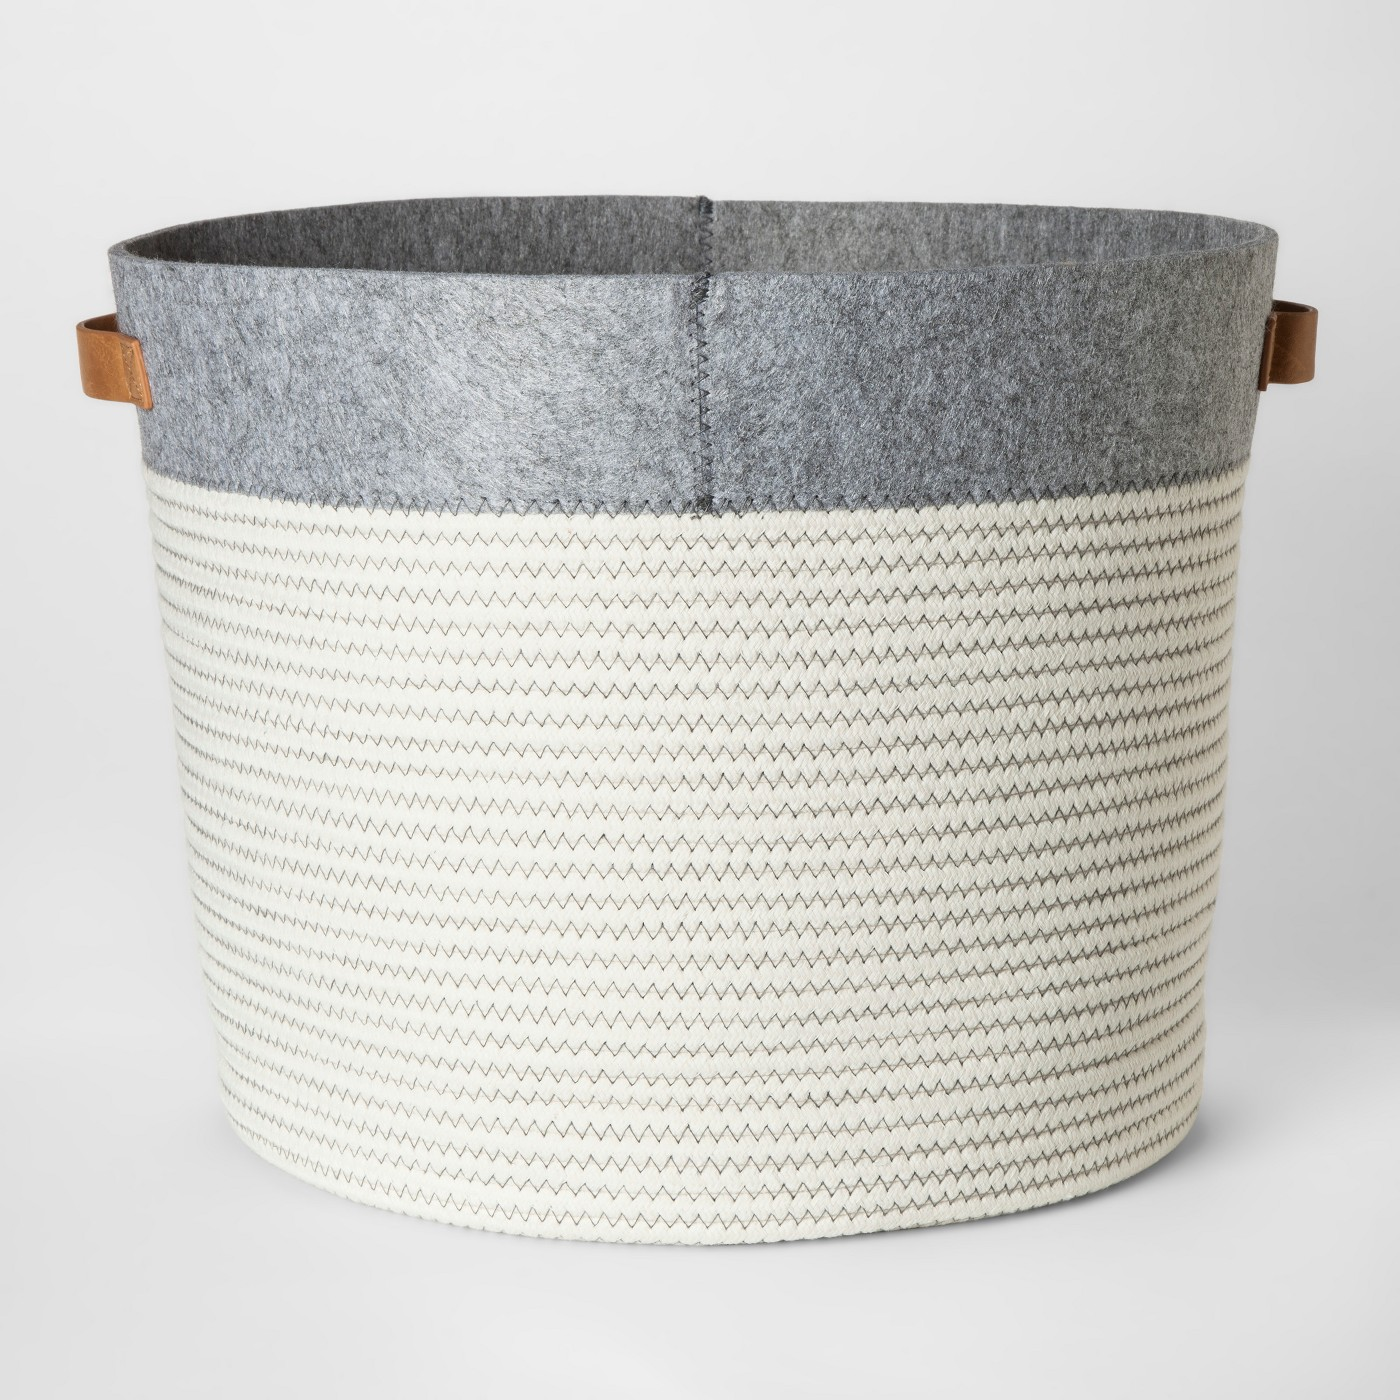 Round Fabric Bin Large Gray & White - Pillowfort™ - image 1 of 3